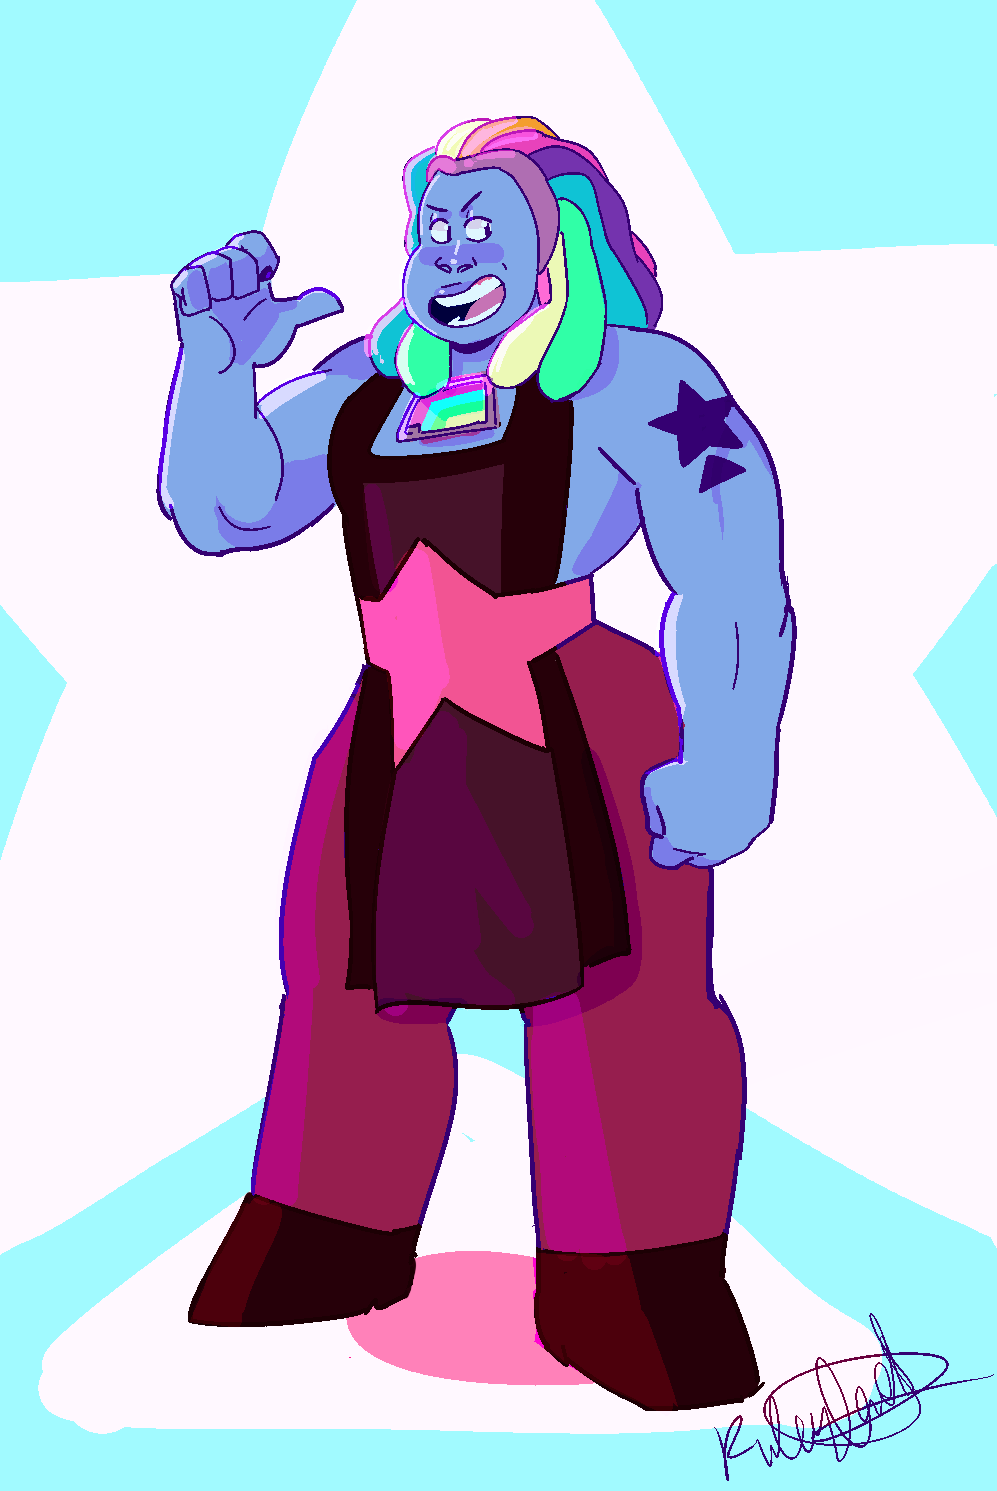 bismuth is so Large i love it